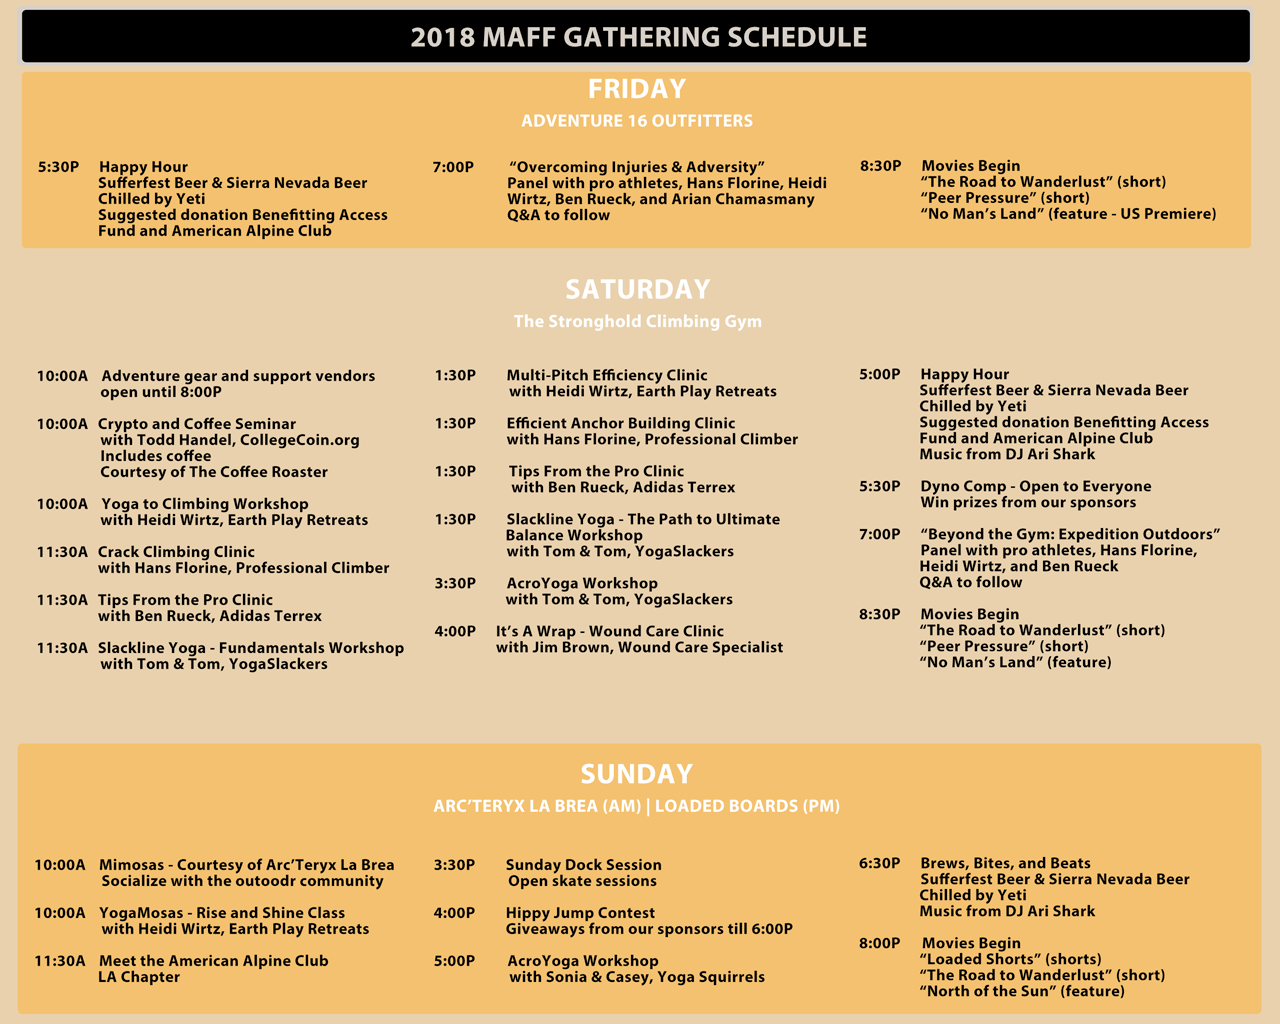 MAFF Gathering Schedule Overview